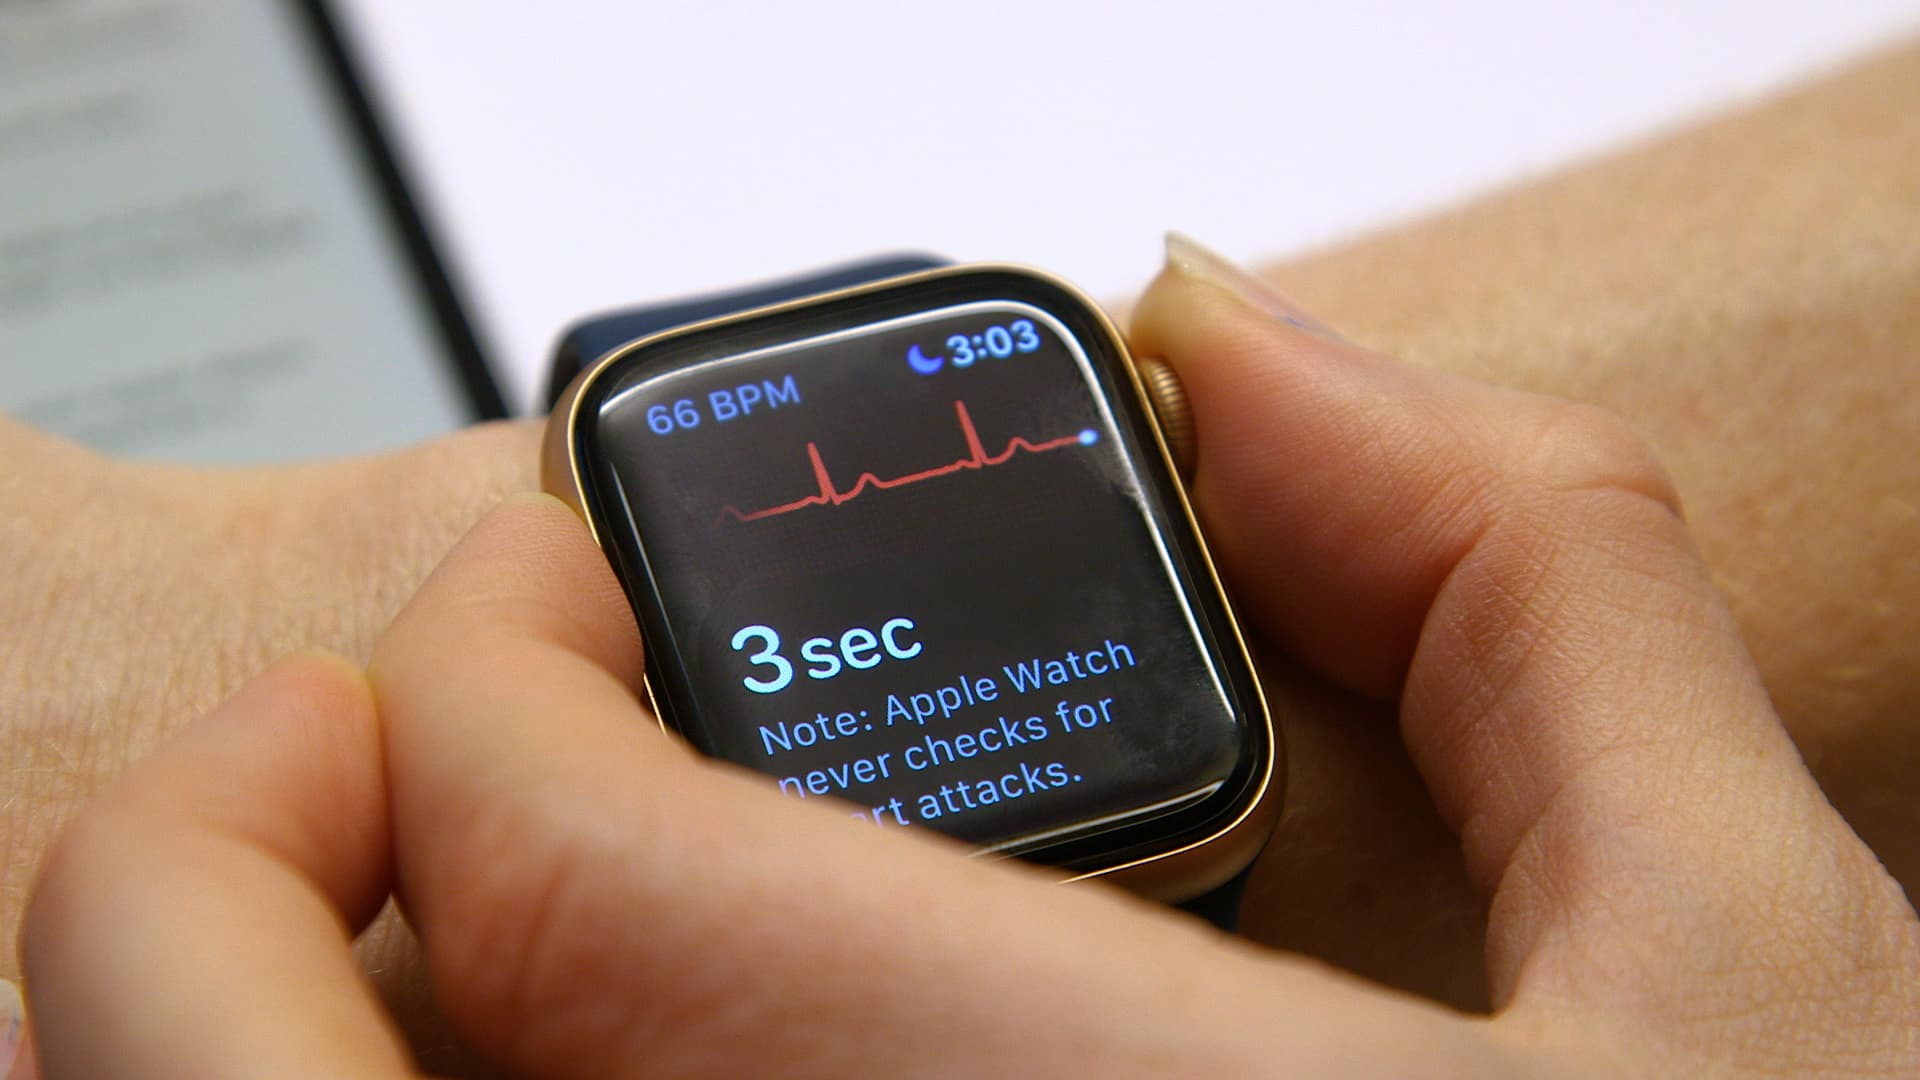 The Apple Watch is giving consumers control over their health, but some doctors say patients are taking it too far